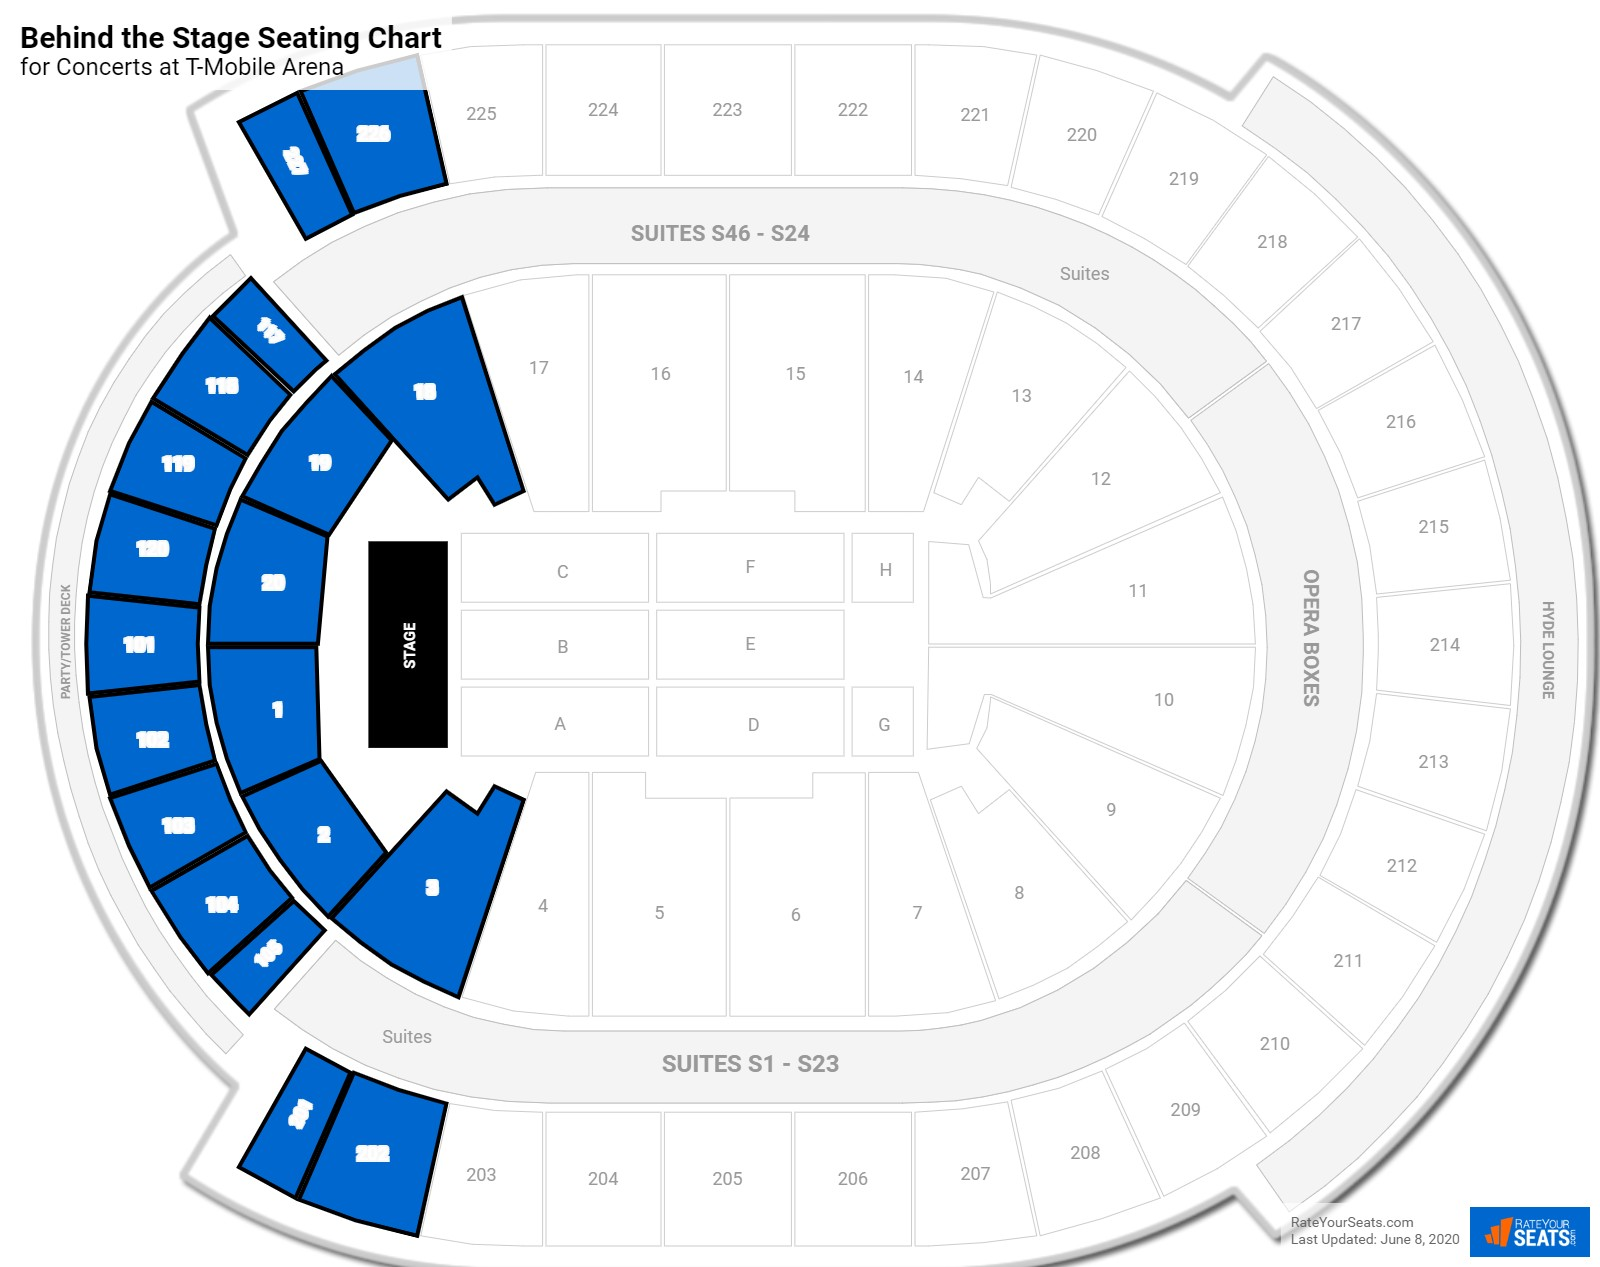 T-Mobile Arena Behind the Stage seating chart